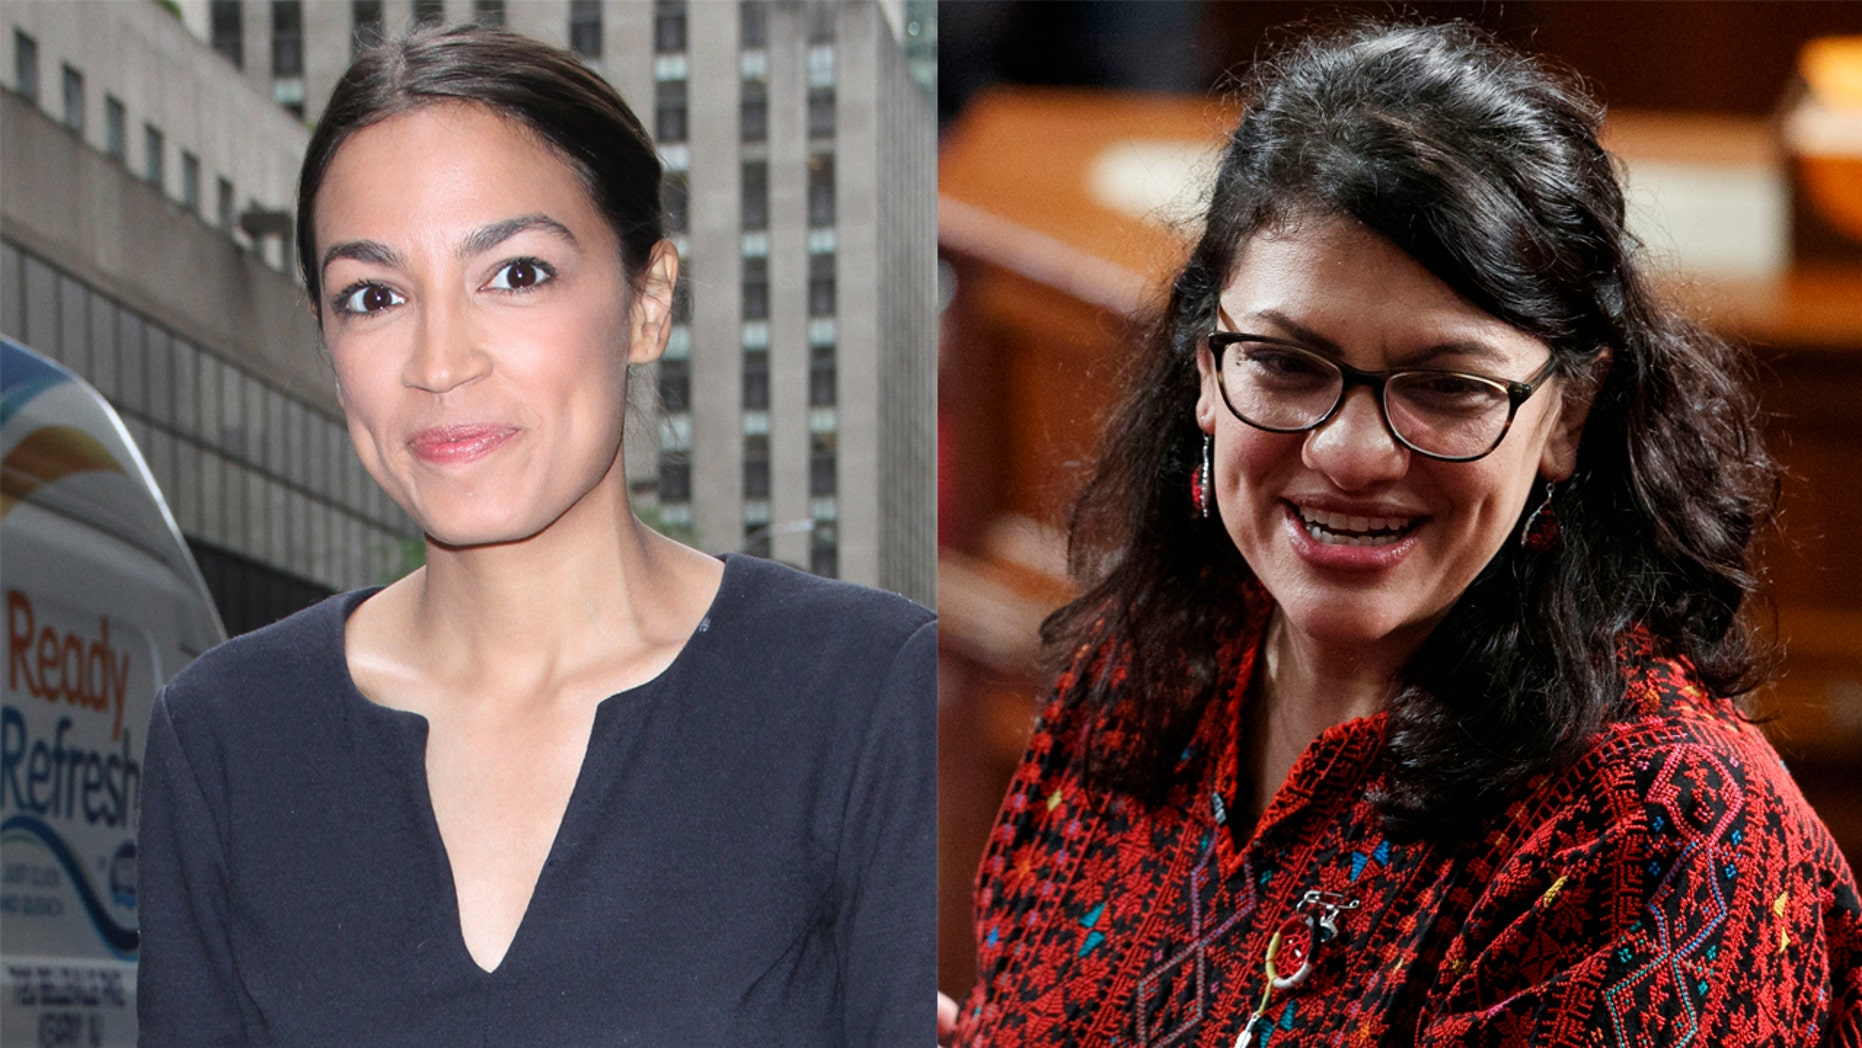 Rep. Alexandria Ocasio-Cortez took a stand for fellow House freshman  Rashida Tlaib on Saturday after the latter's expletive-laced comments in favor of impeaching the president.